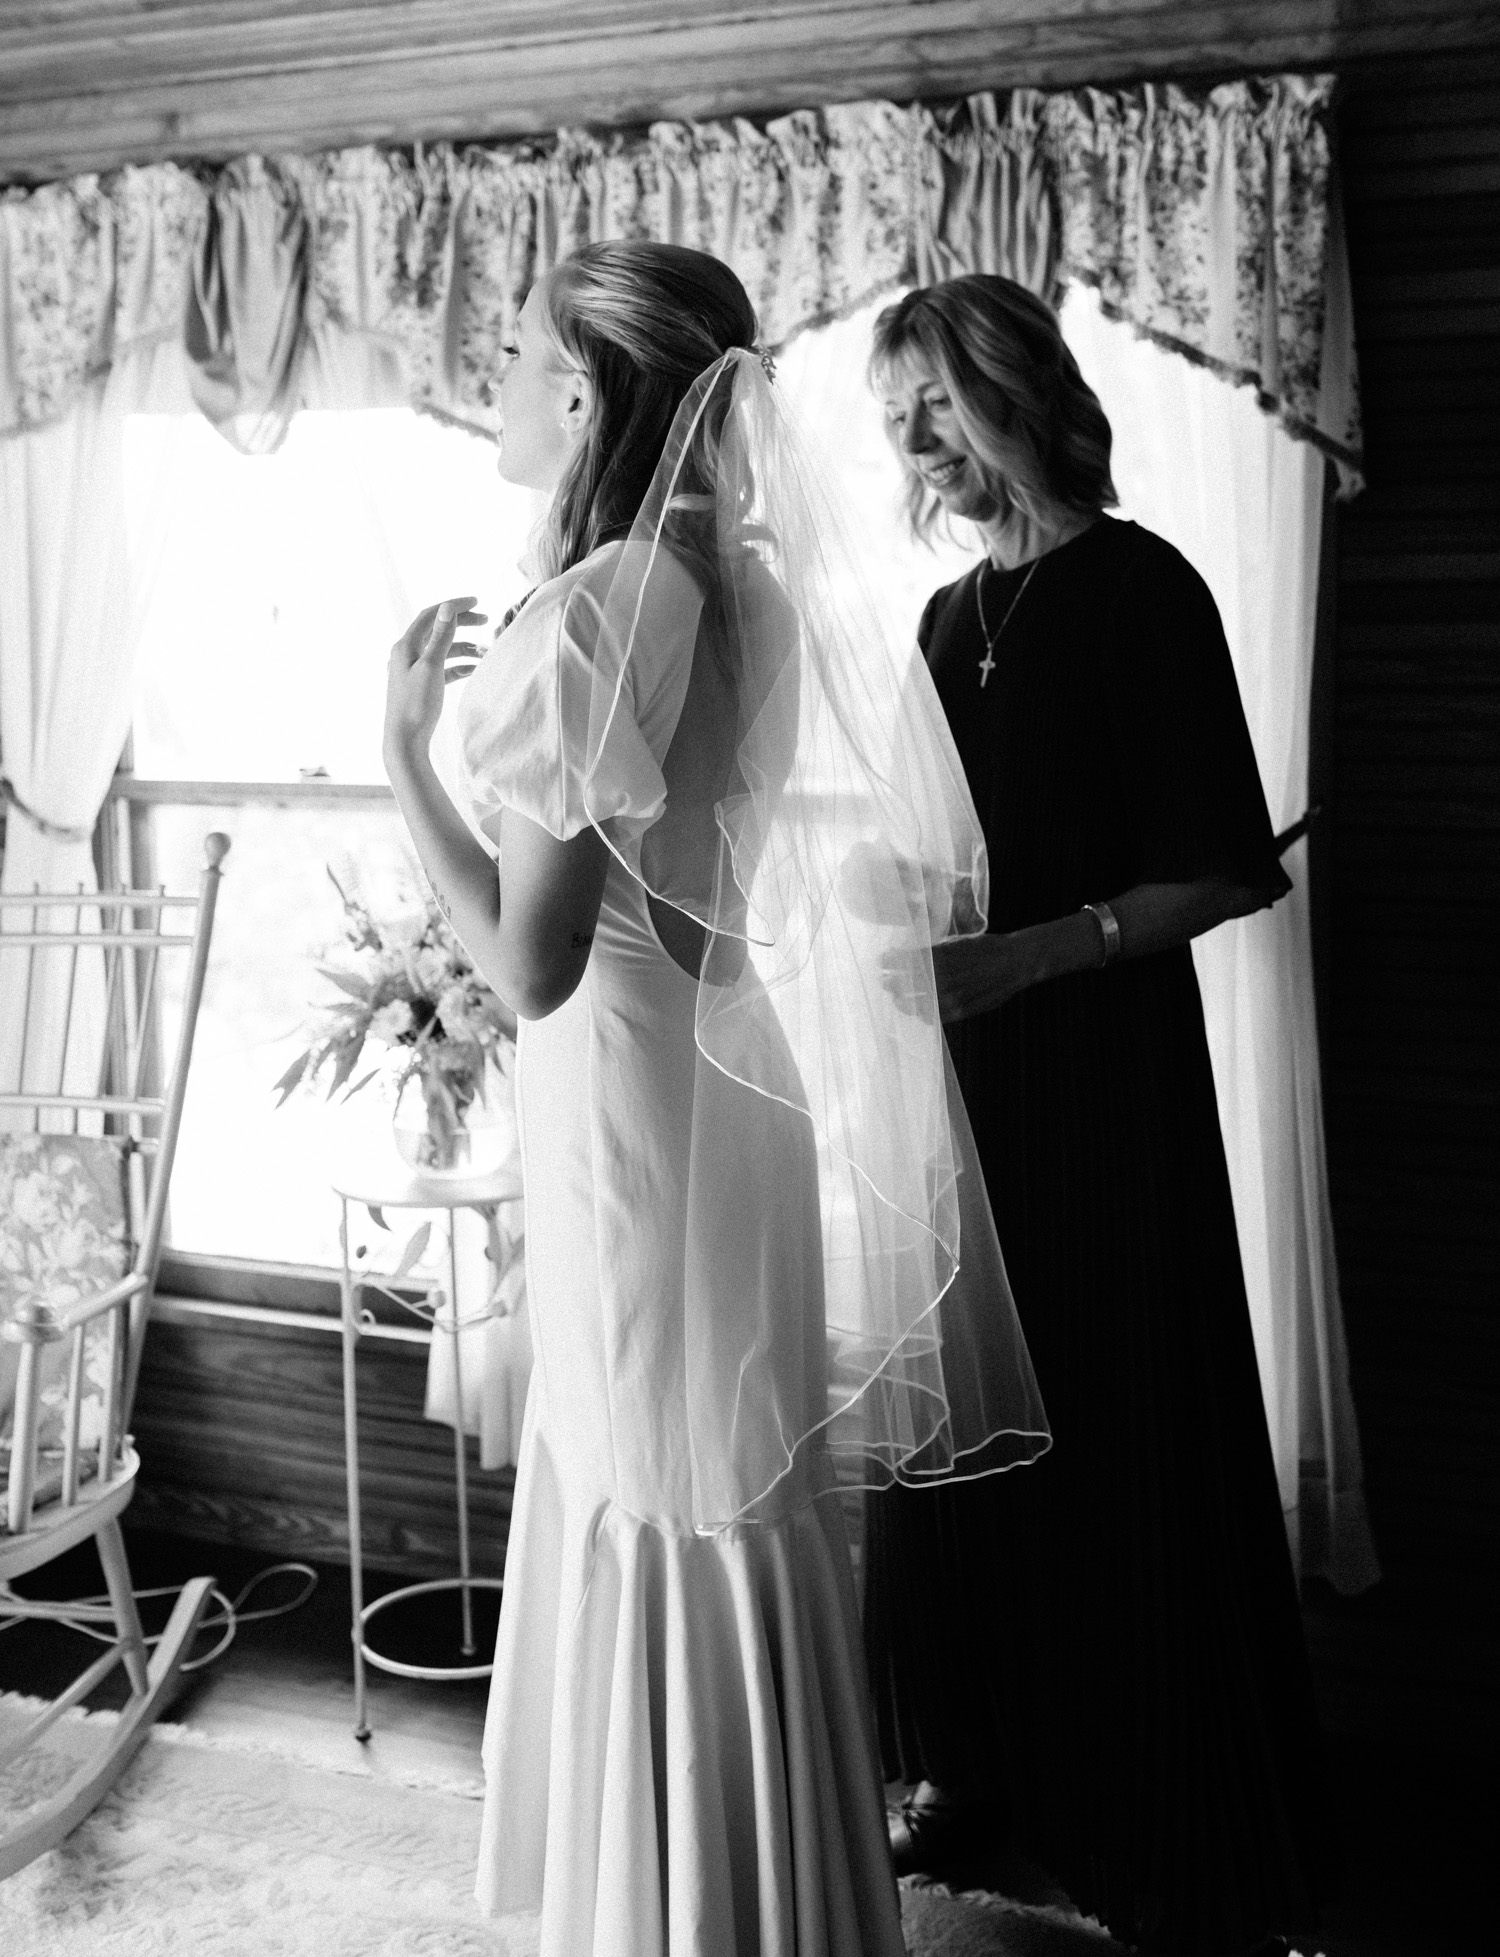 A bride's mother helps her prepare in their family home in Petoskey, Michigan